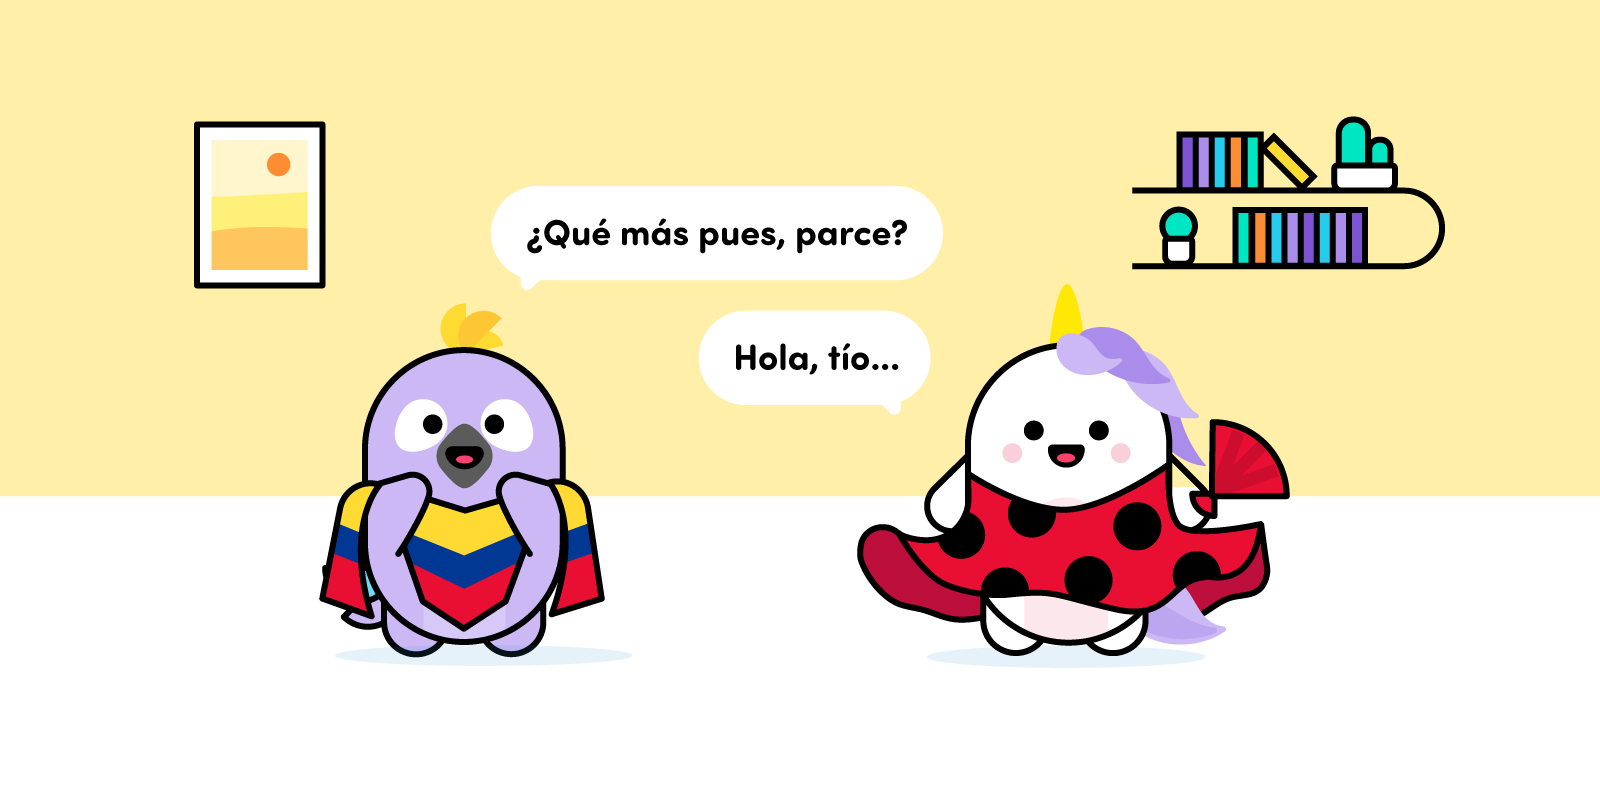 Lost in translation? Ways to say buddy in Spanish - Chatterbug